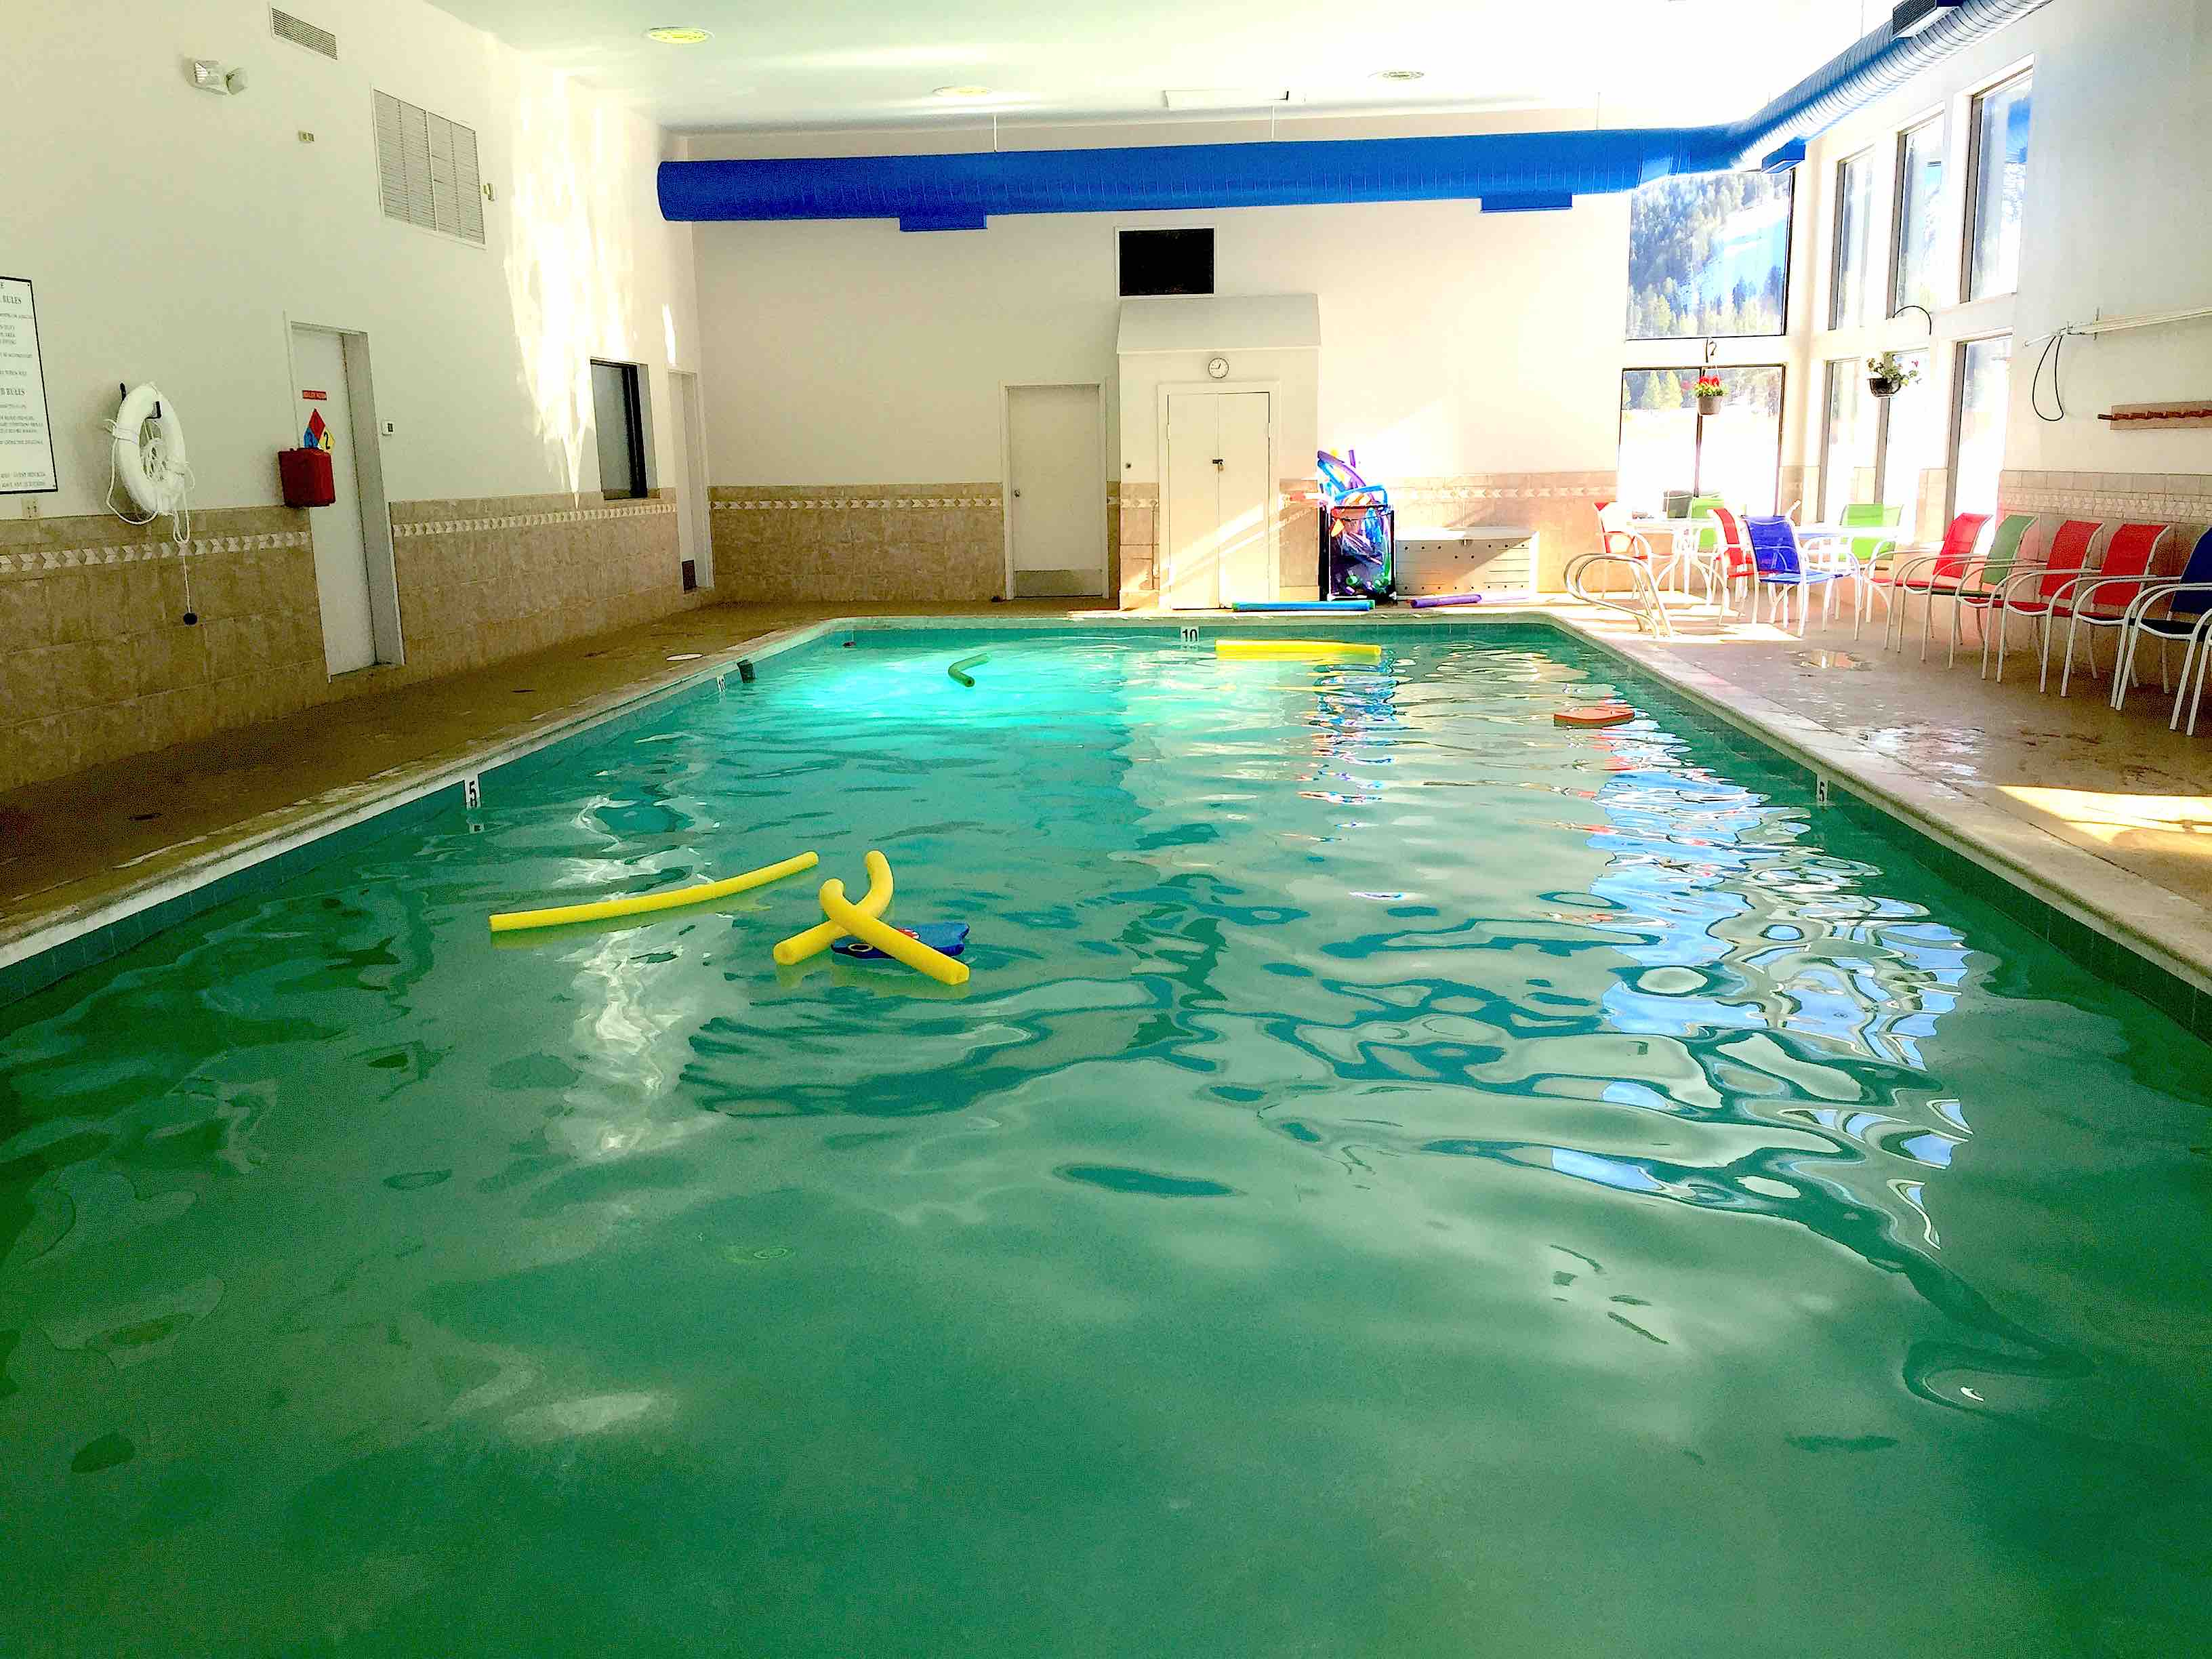 Pool spa inspection checklist sample internachi - Residential swimming pool inspection ...